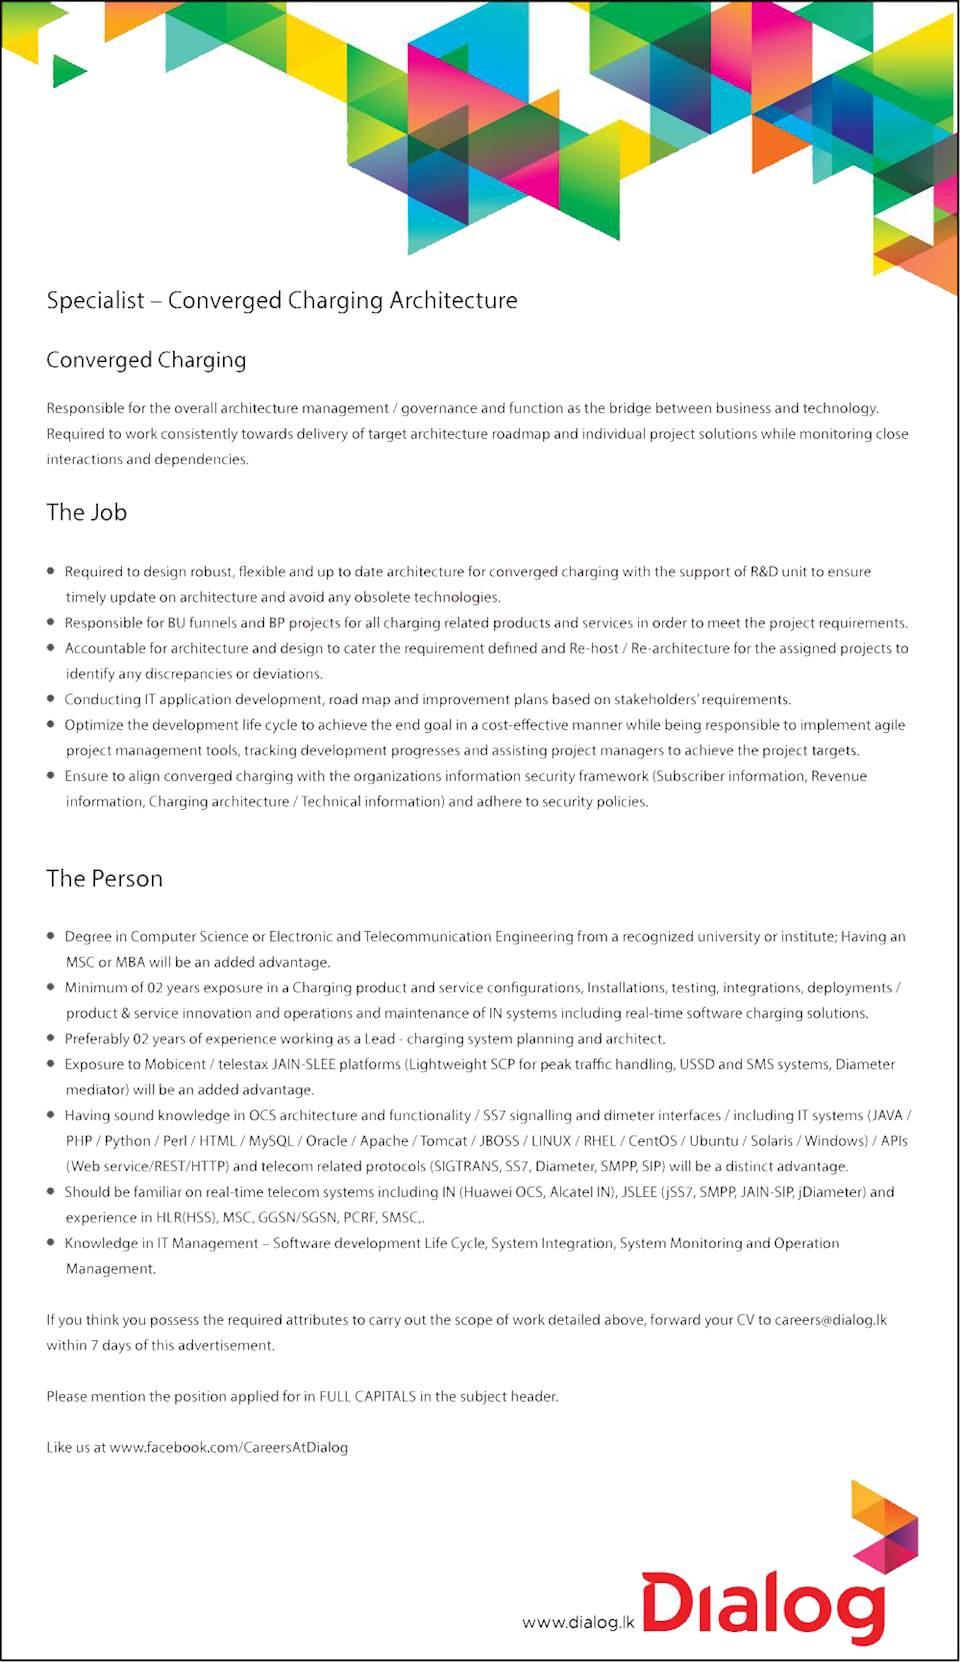 Specialist - Converged Charging Architecture